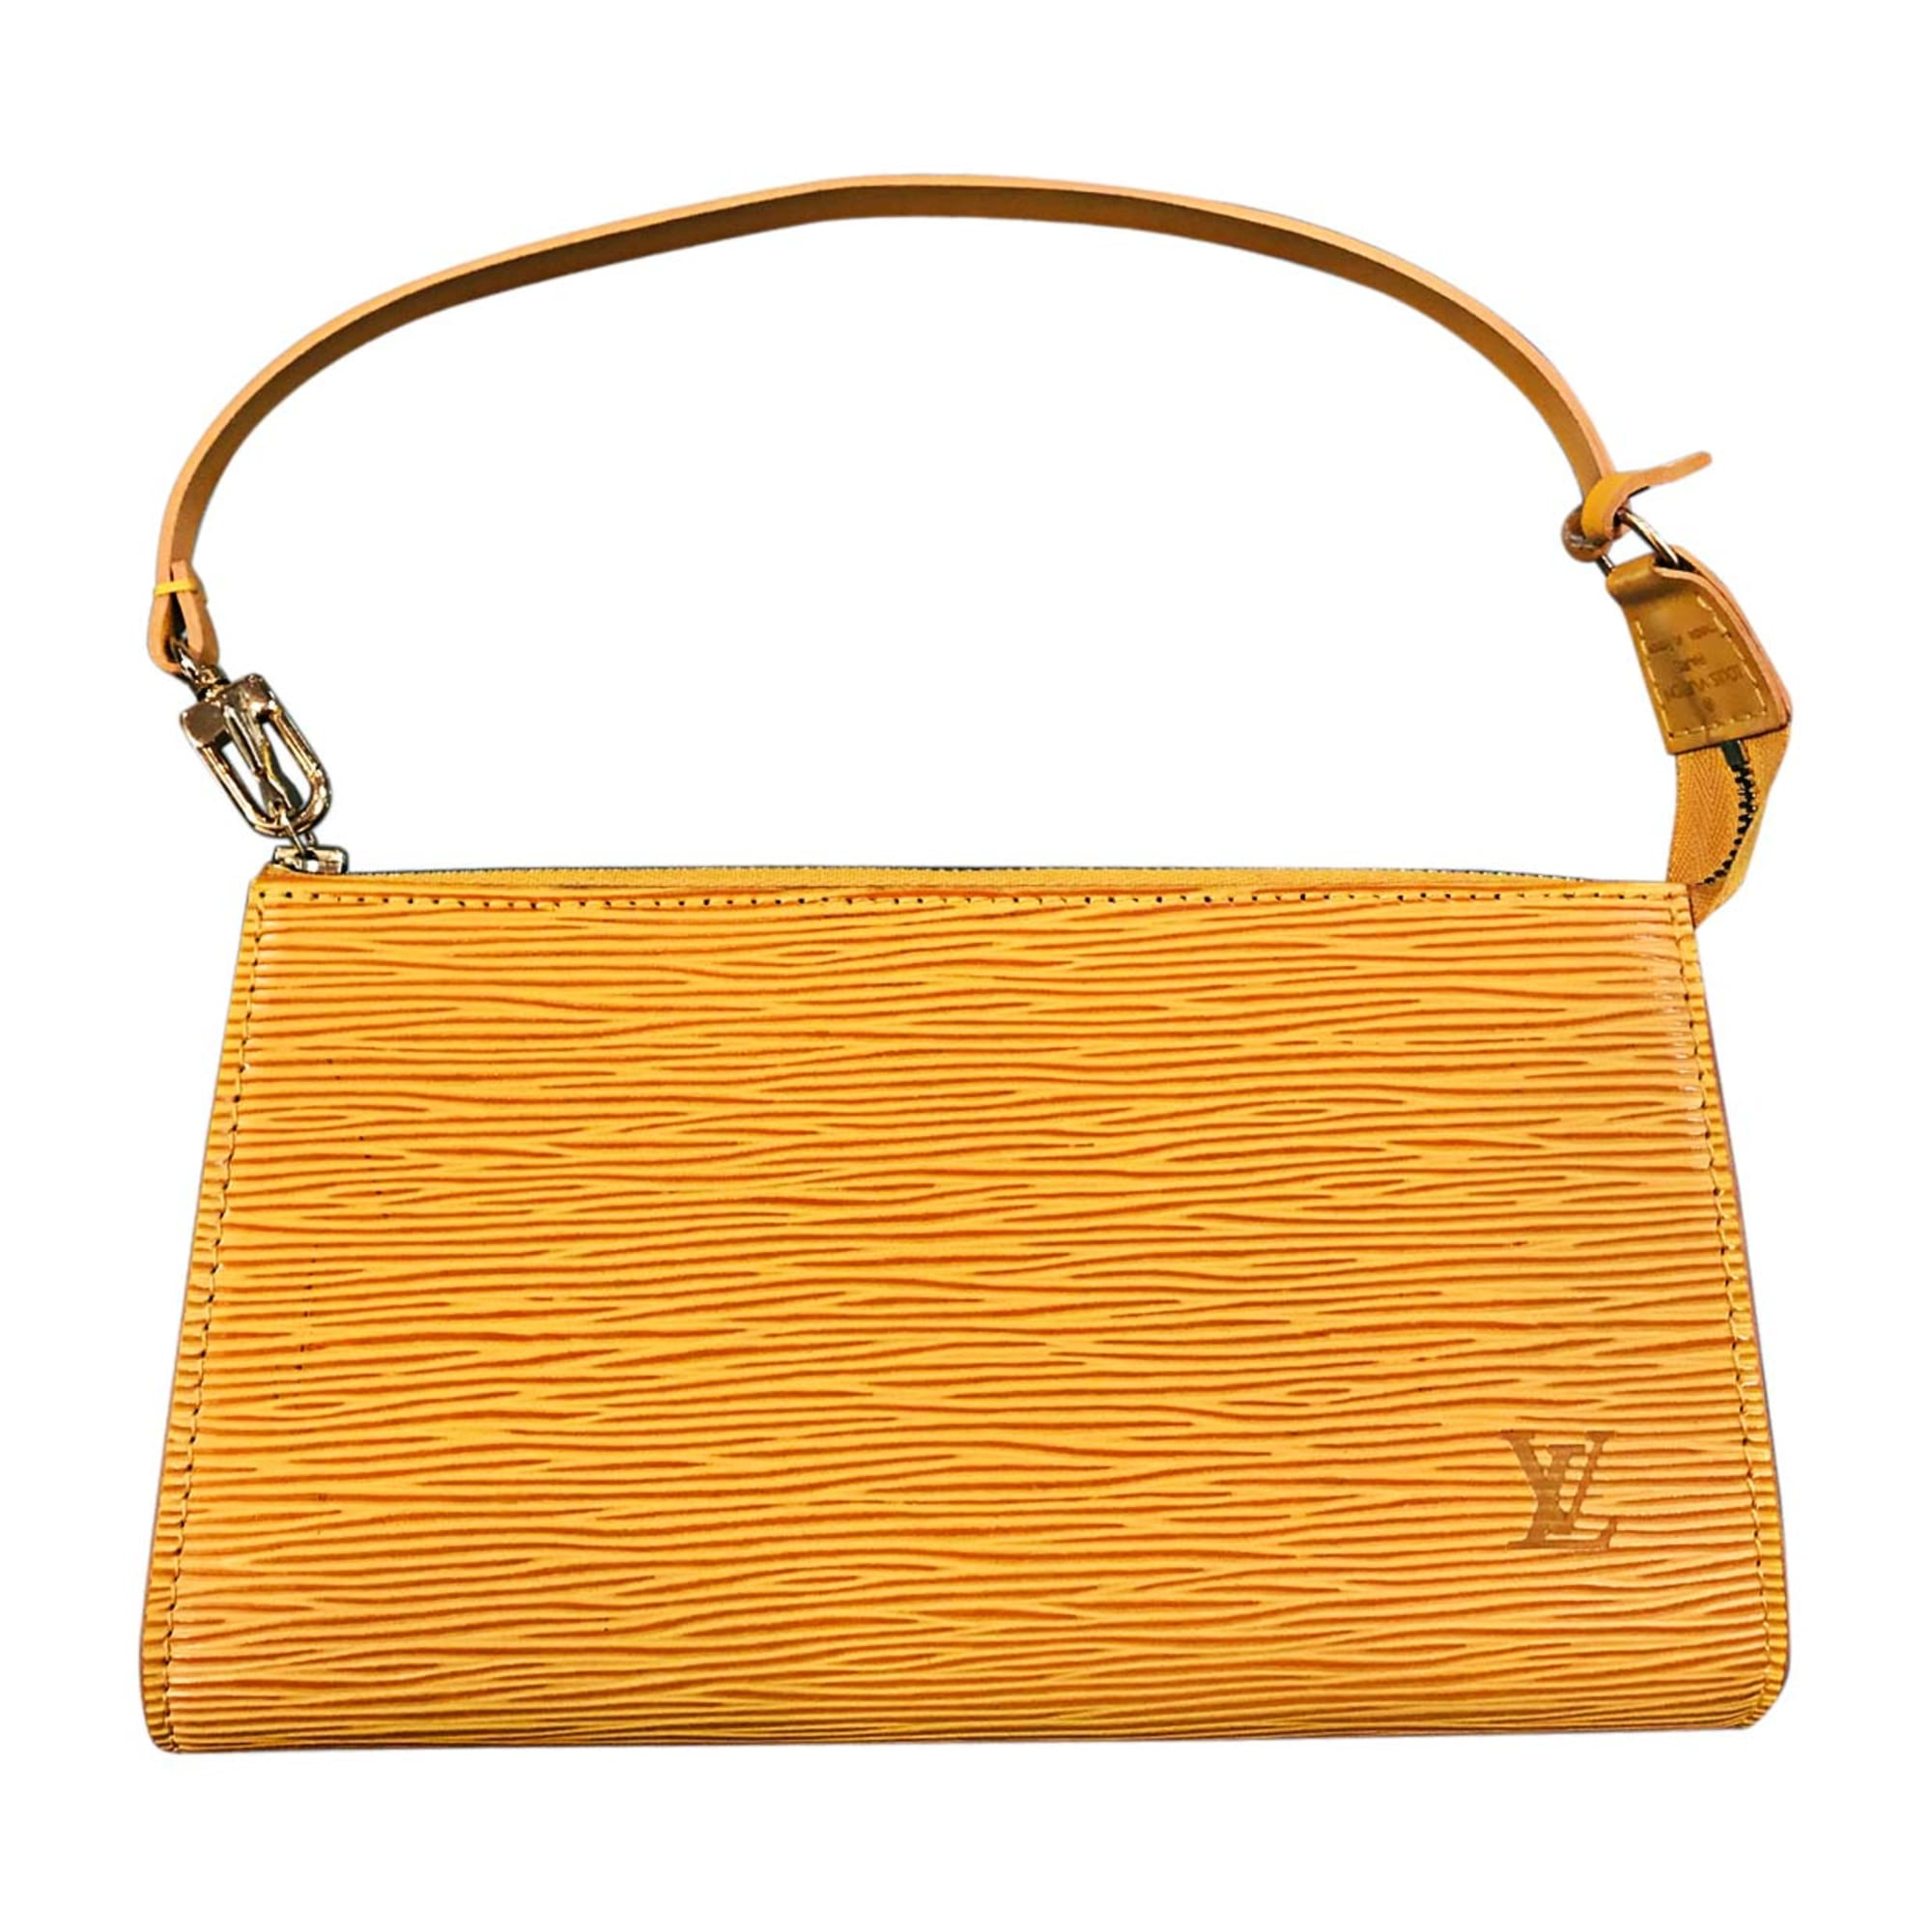 Pochette LOUIS VUITTON jaune vendu par Dress troc de haguenau - 7085839 f790d466607